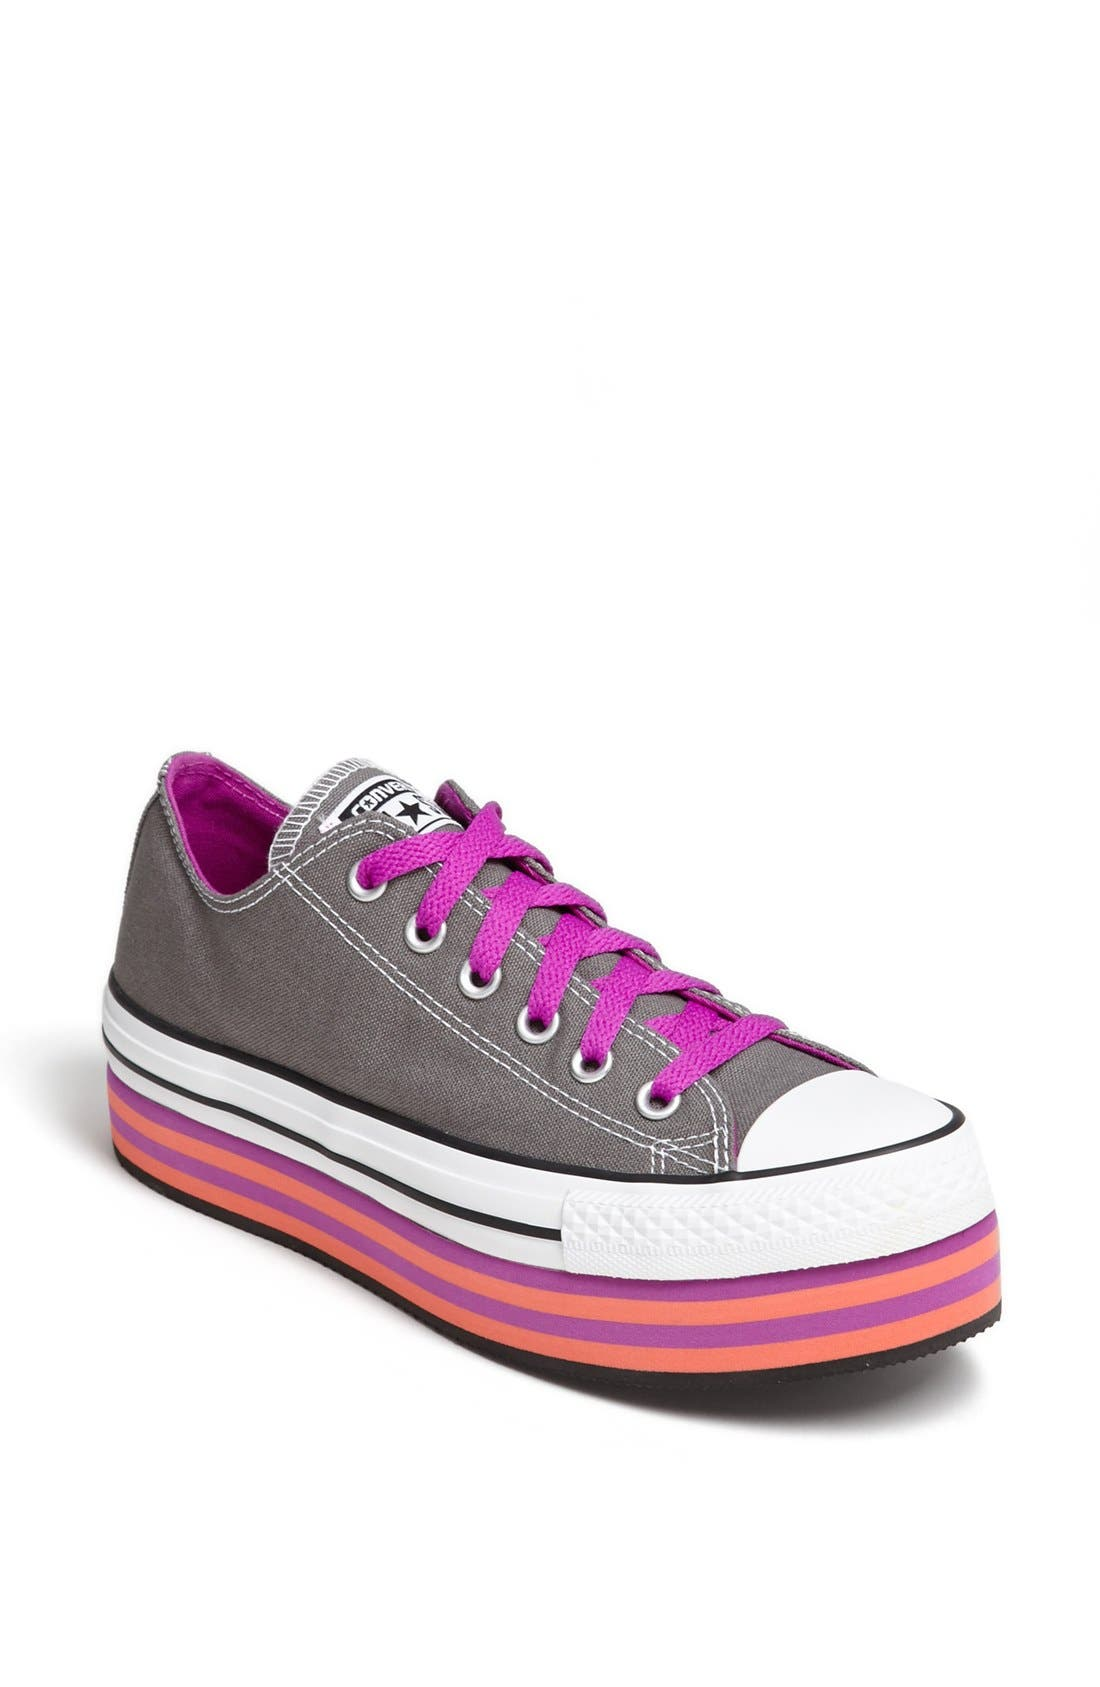 Alternate Image 1 Selected - Converse Chuck Taylor® All Star® Platform Sneaker (Women)